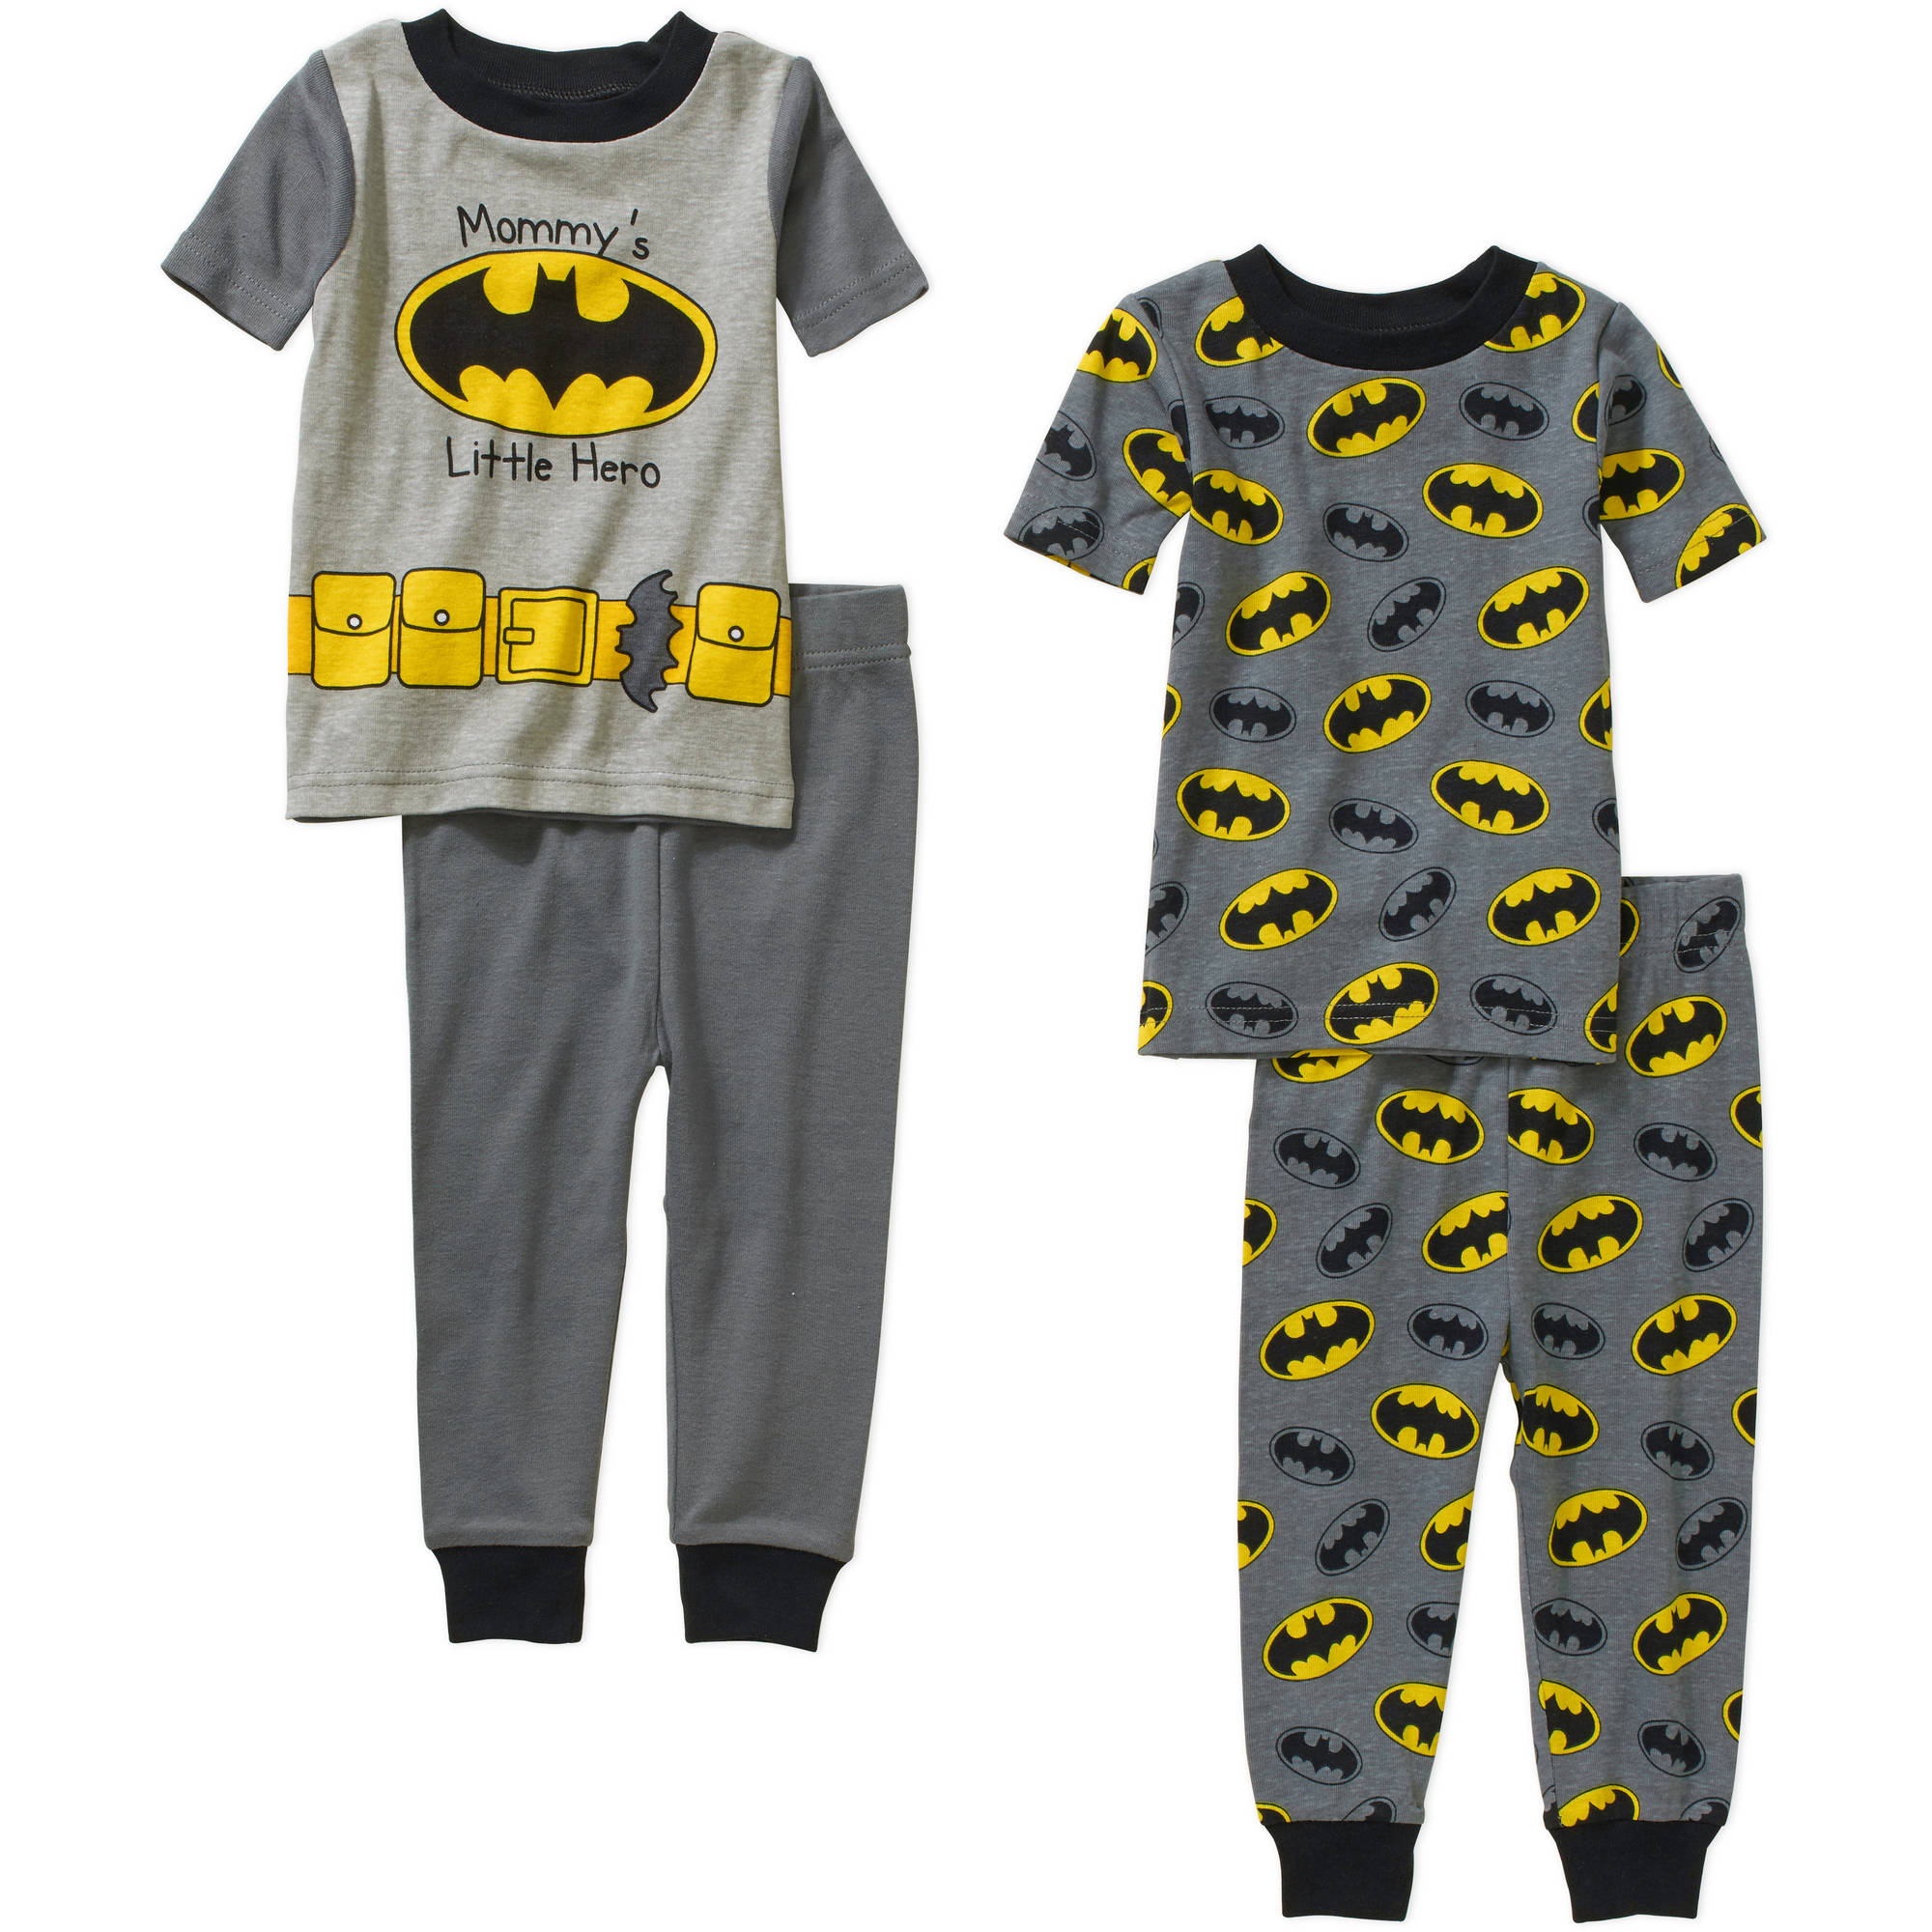 Batman Infant Baby Boy Cotton Tight Fit Short Sleeve Pajama Set, 4-Pieces